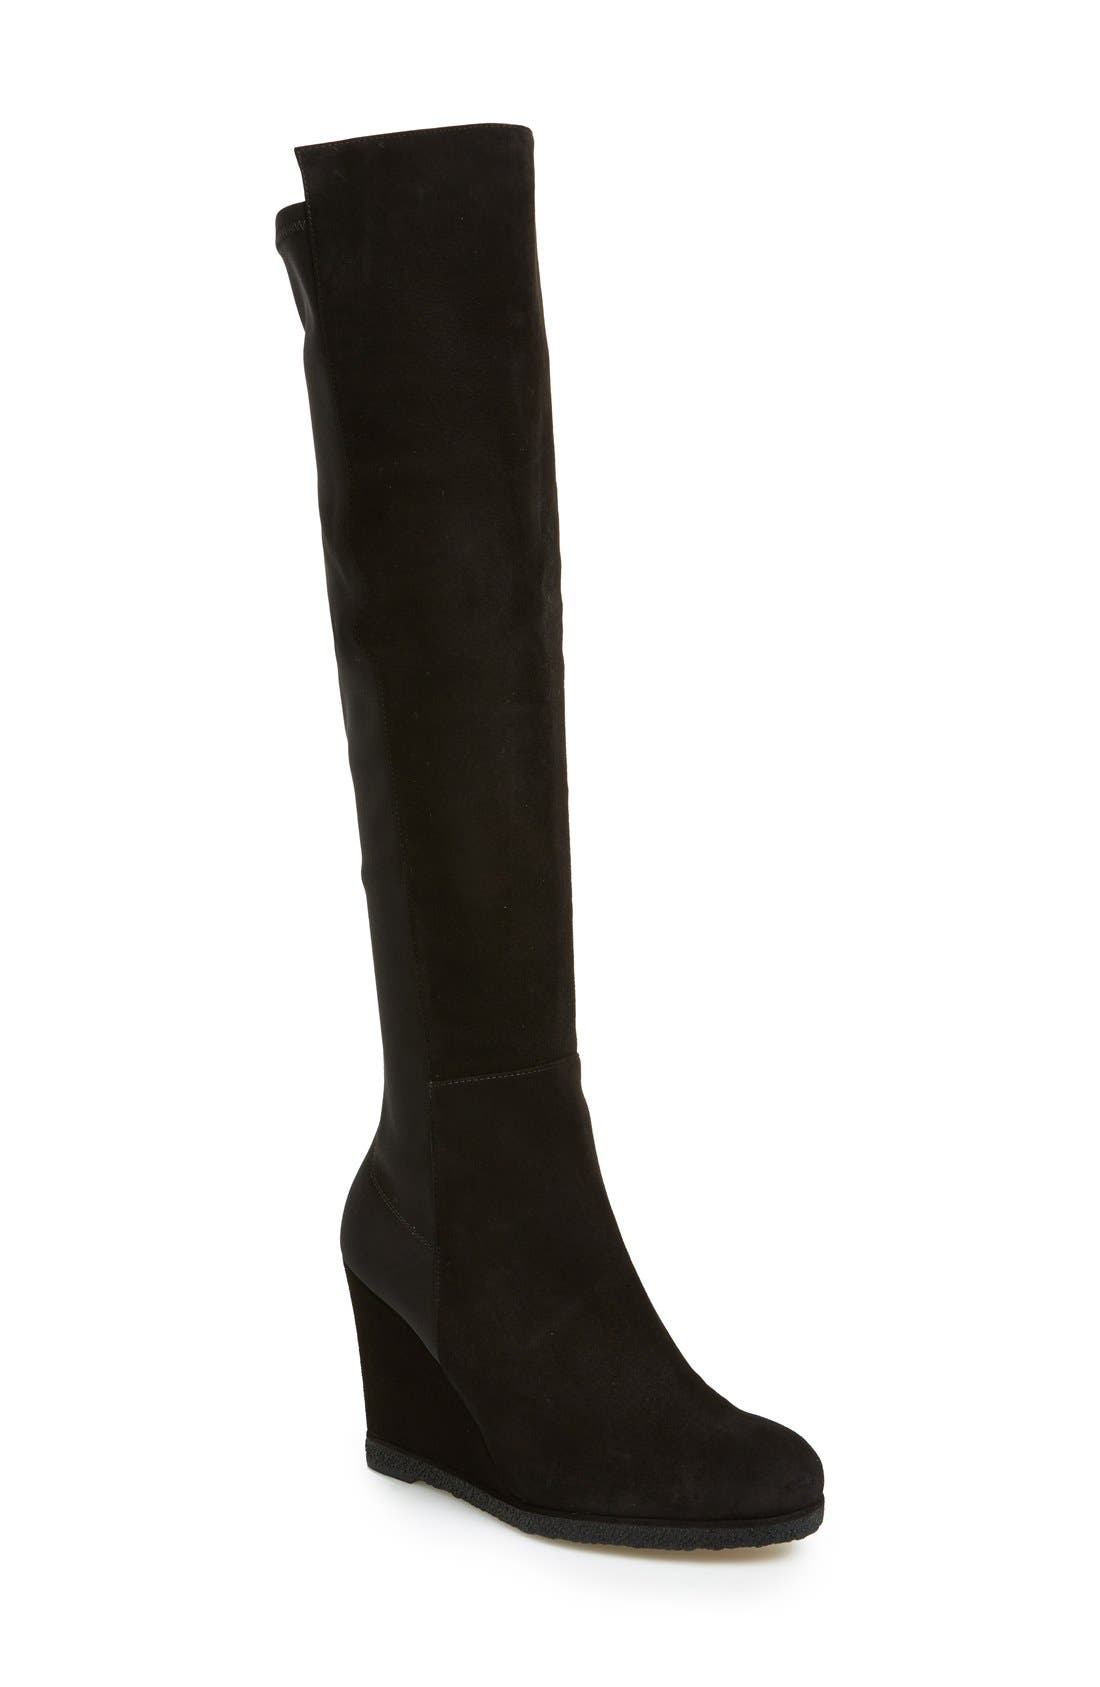 Main Image - Stuart Weitzman 'Demiswoon' Over the Knee Boot